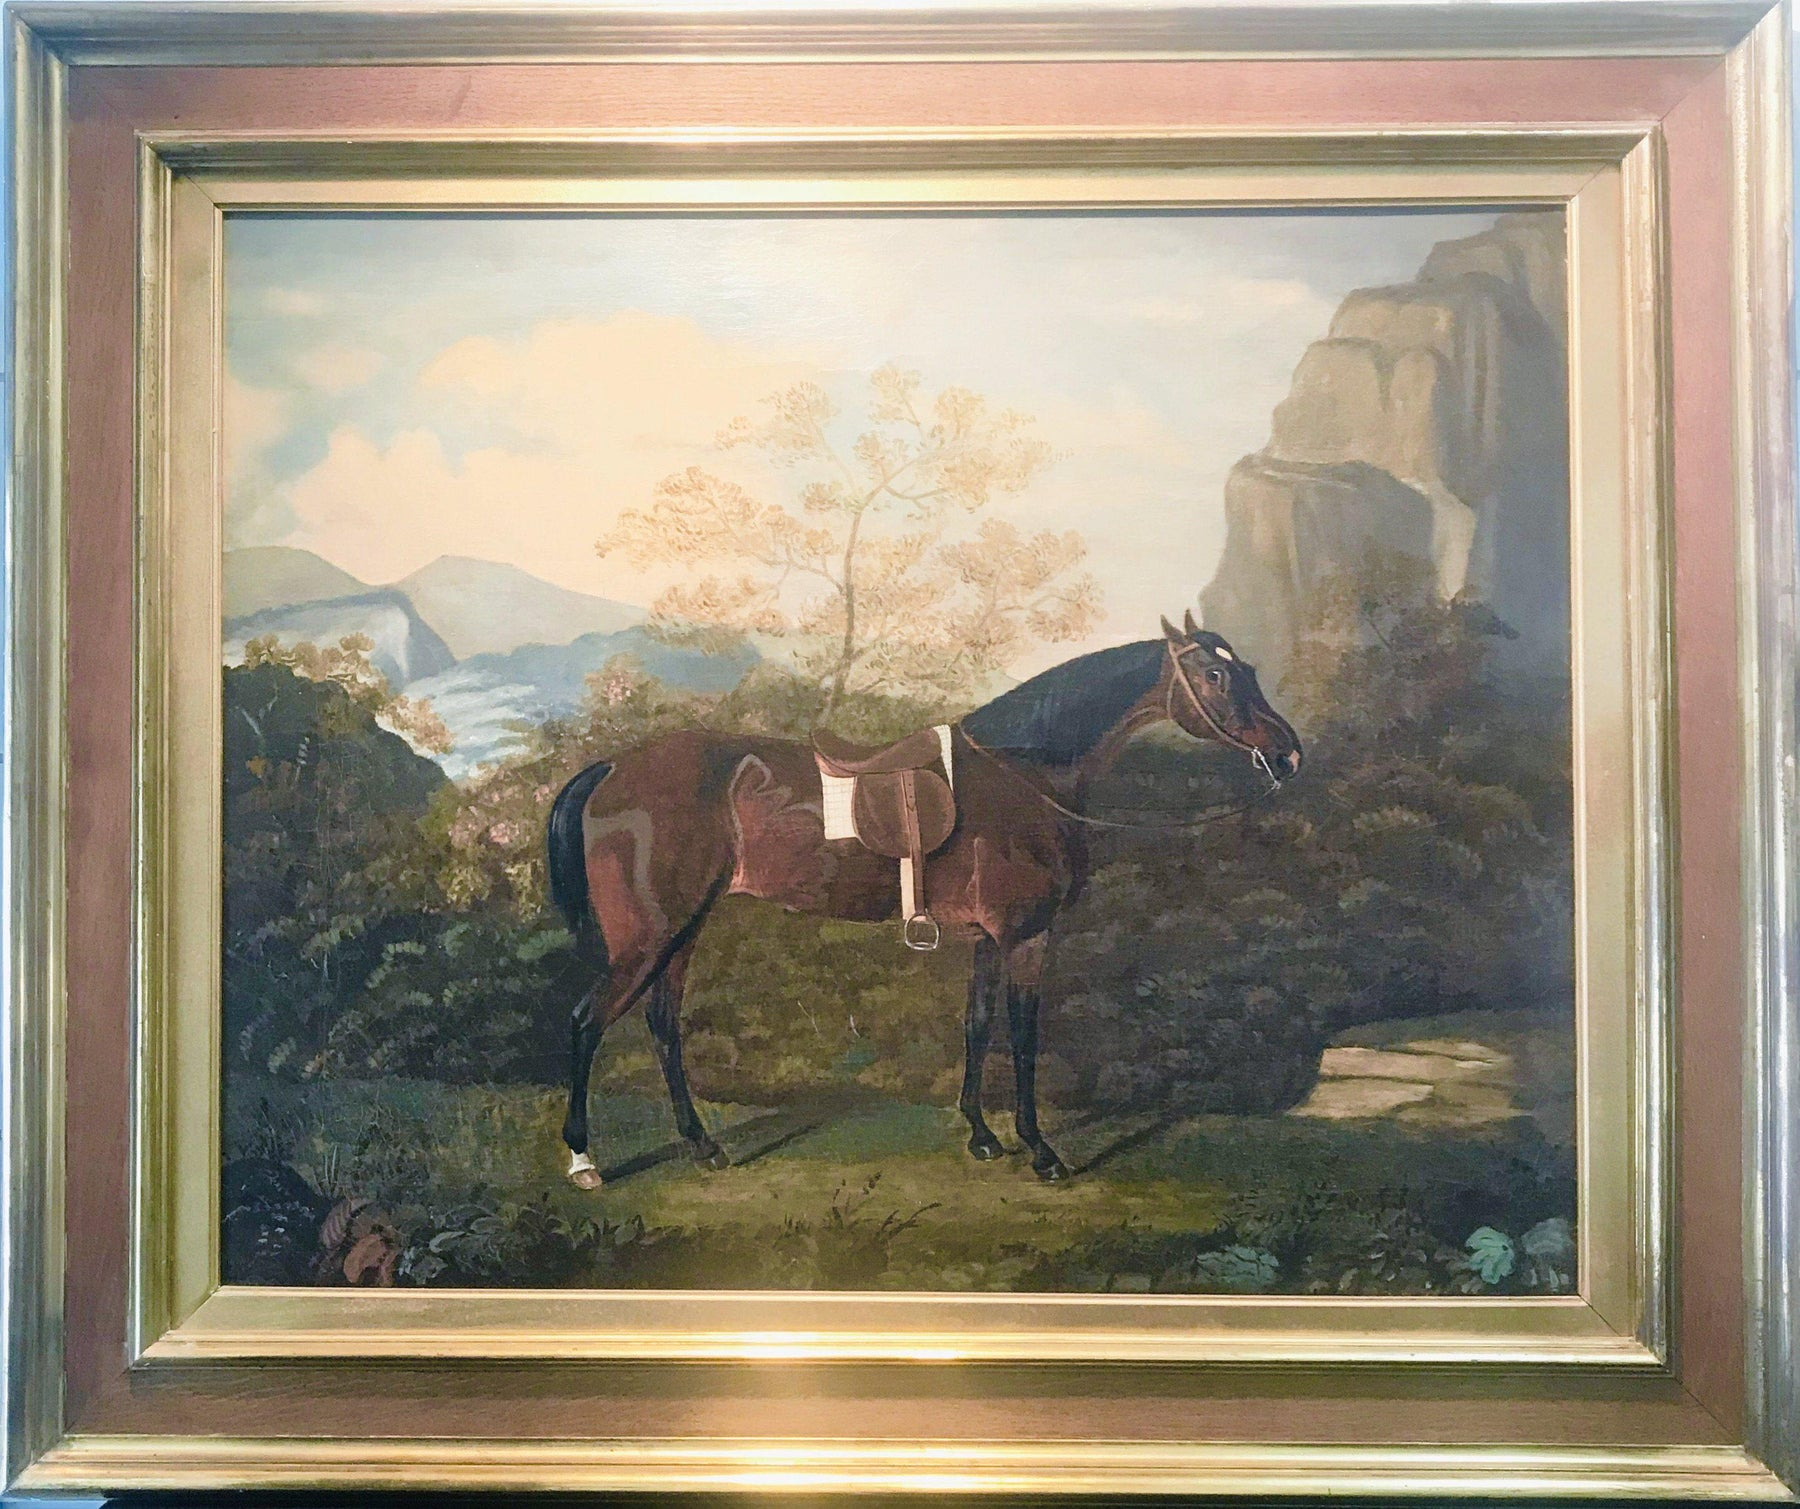 For sale: British Equestrian Painting dated 1826 by Daniel Lloyd